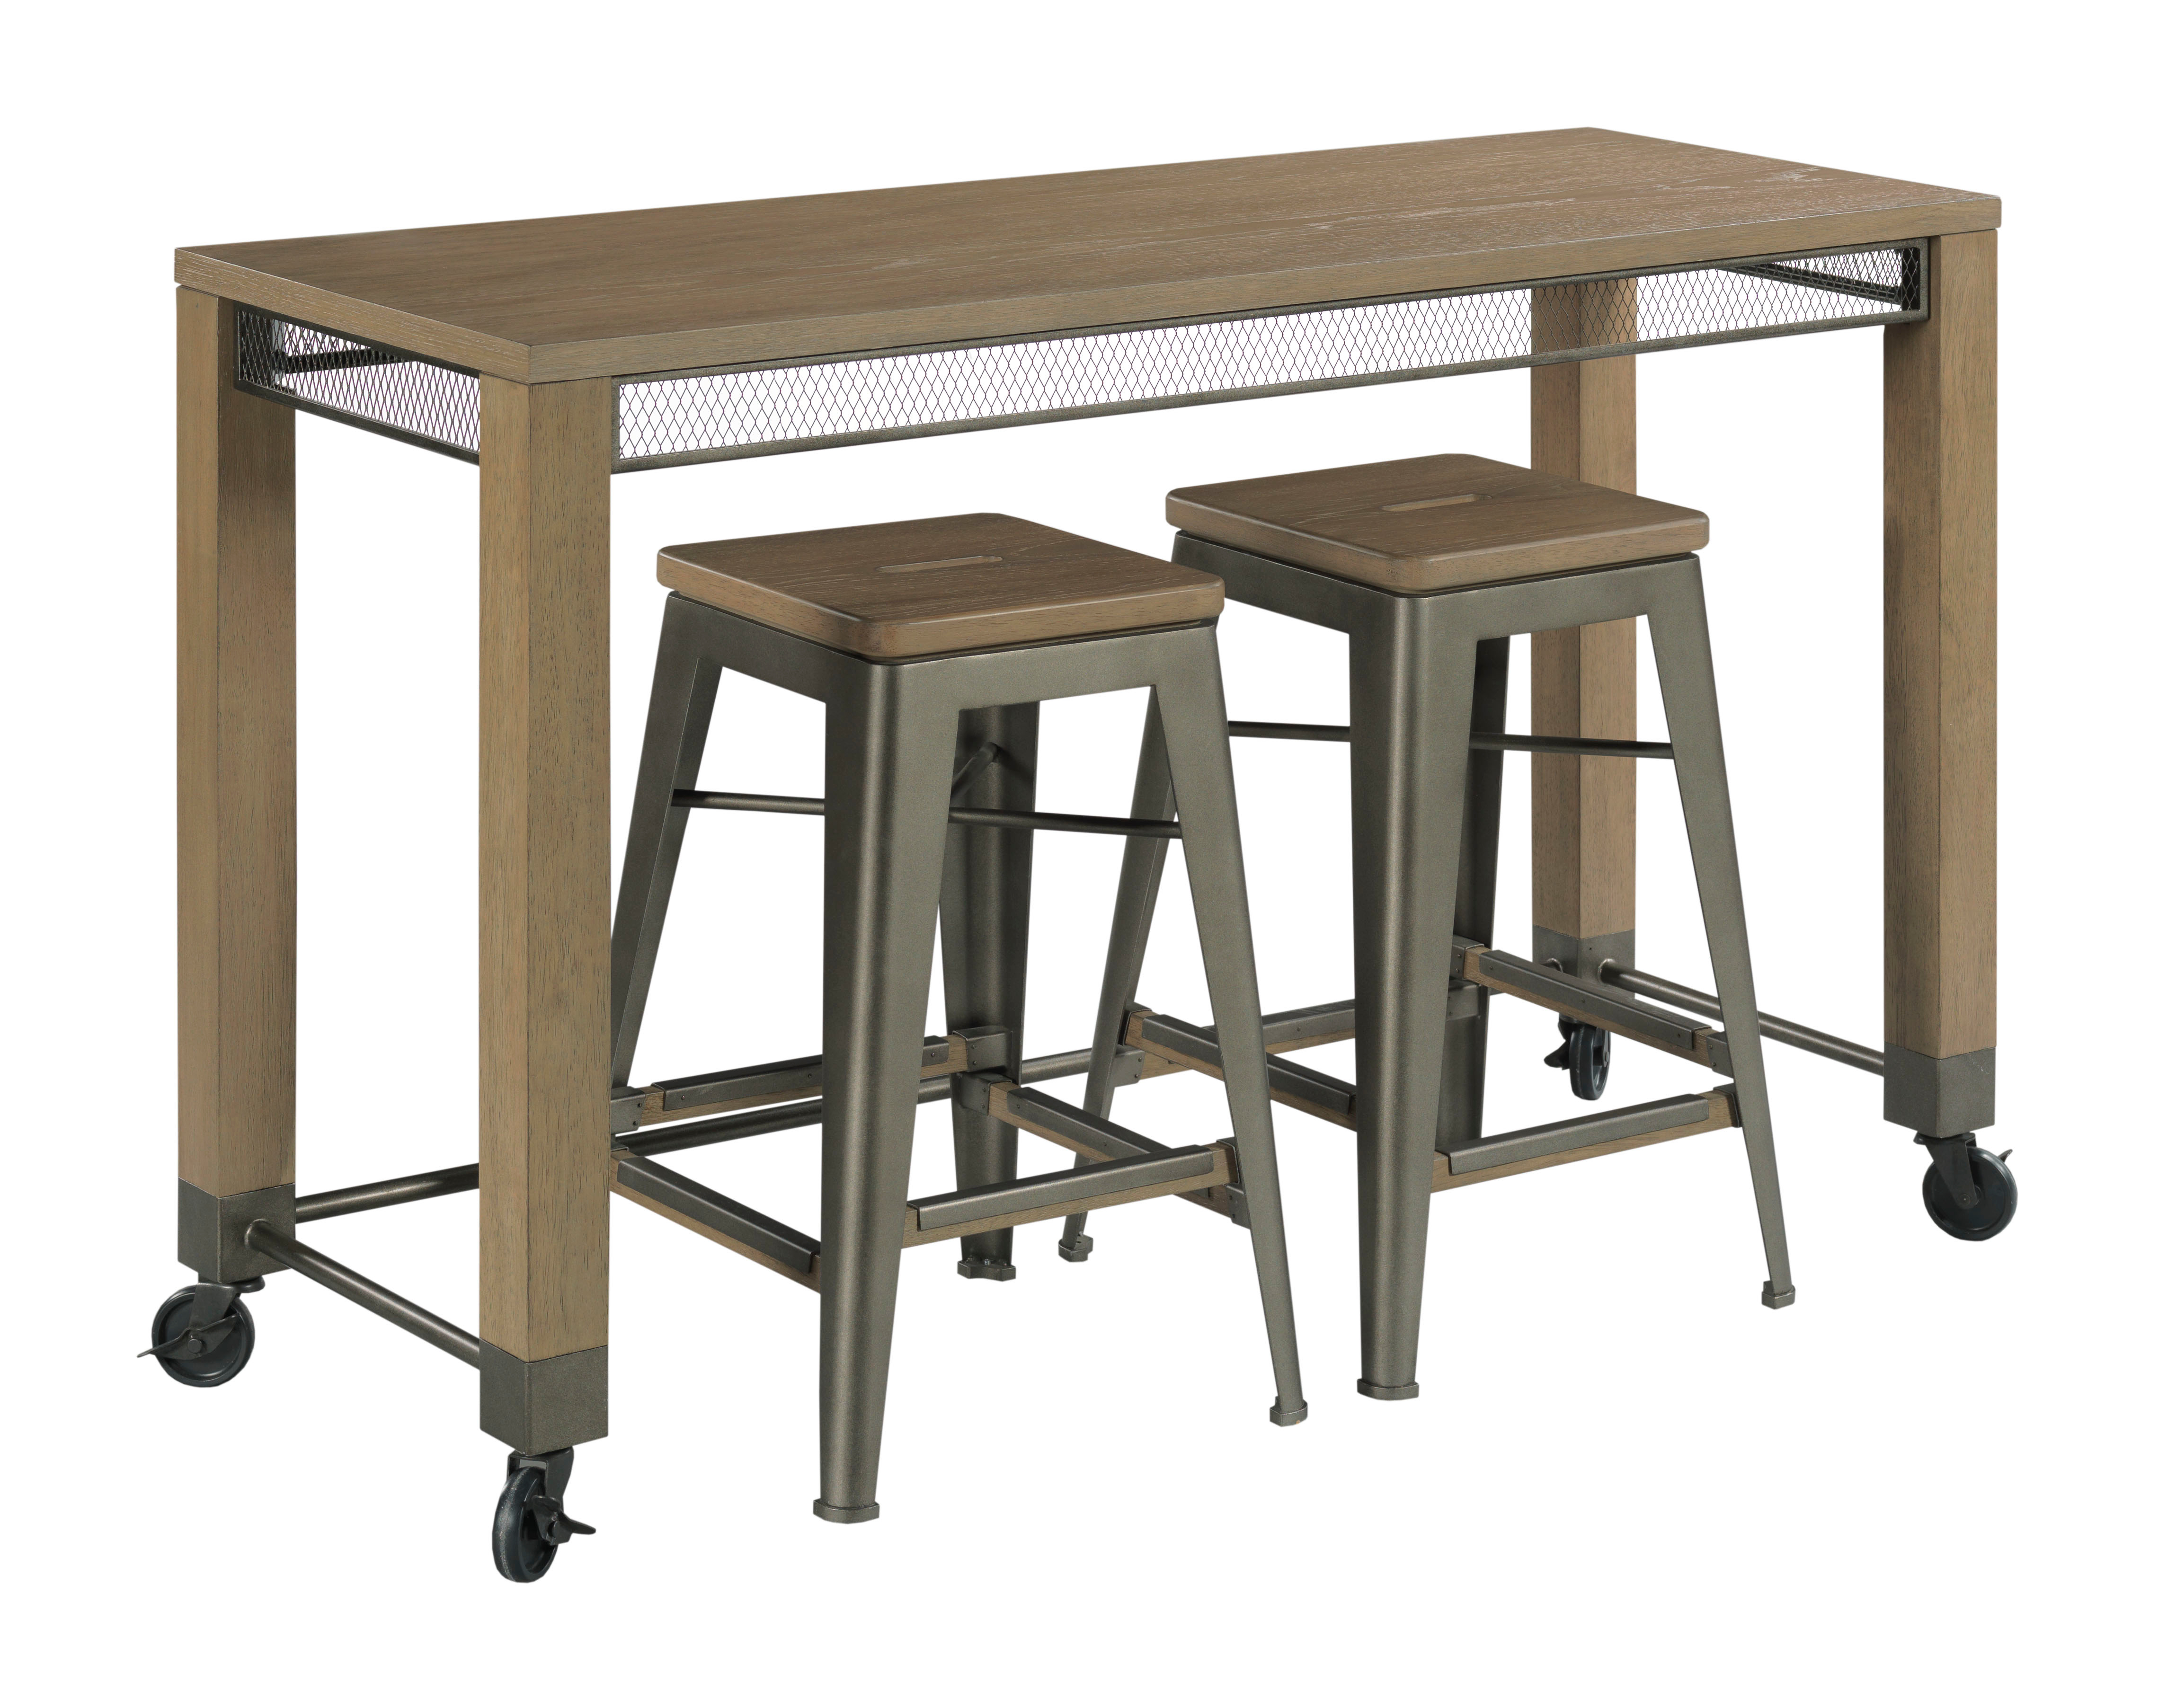 Maya Counter Console w/ 2 Stools by Table Trends at Sprintz Furniture